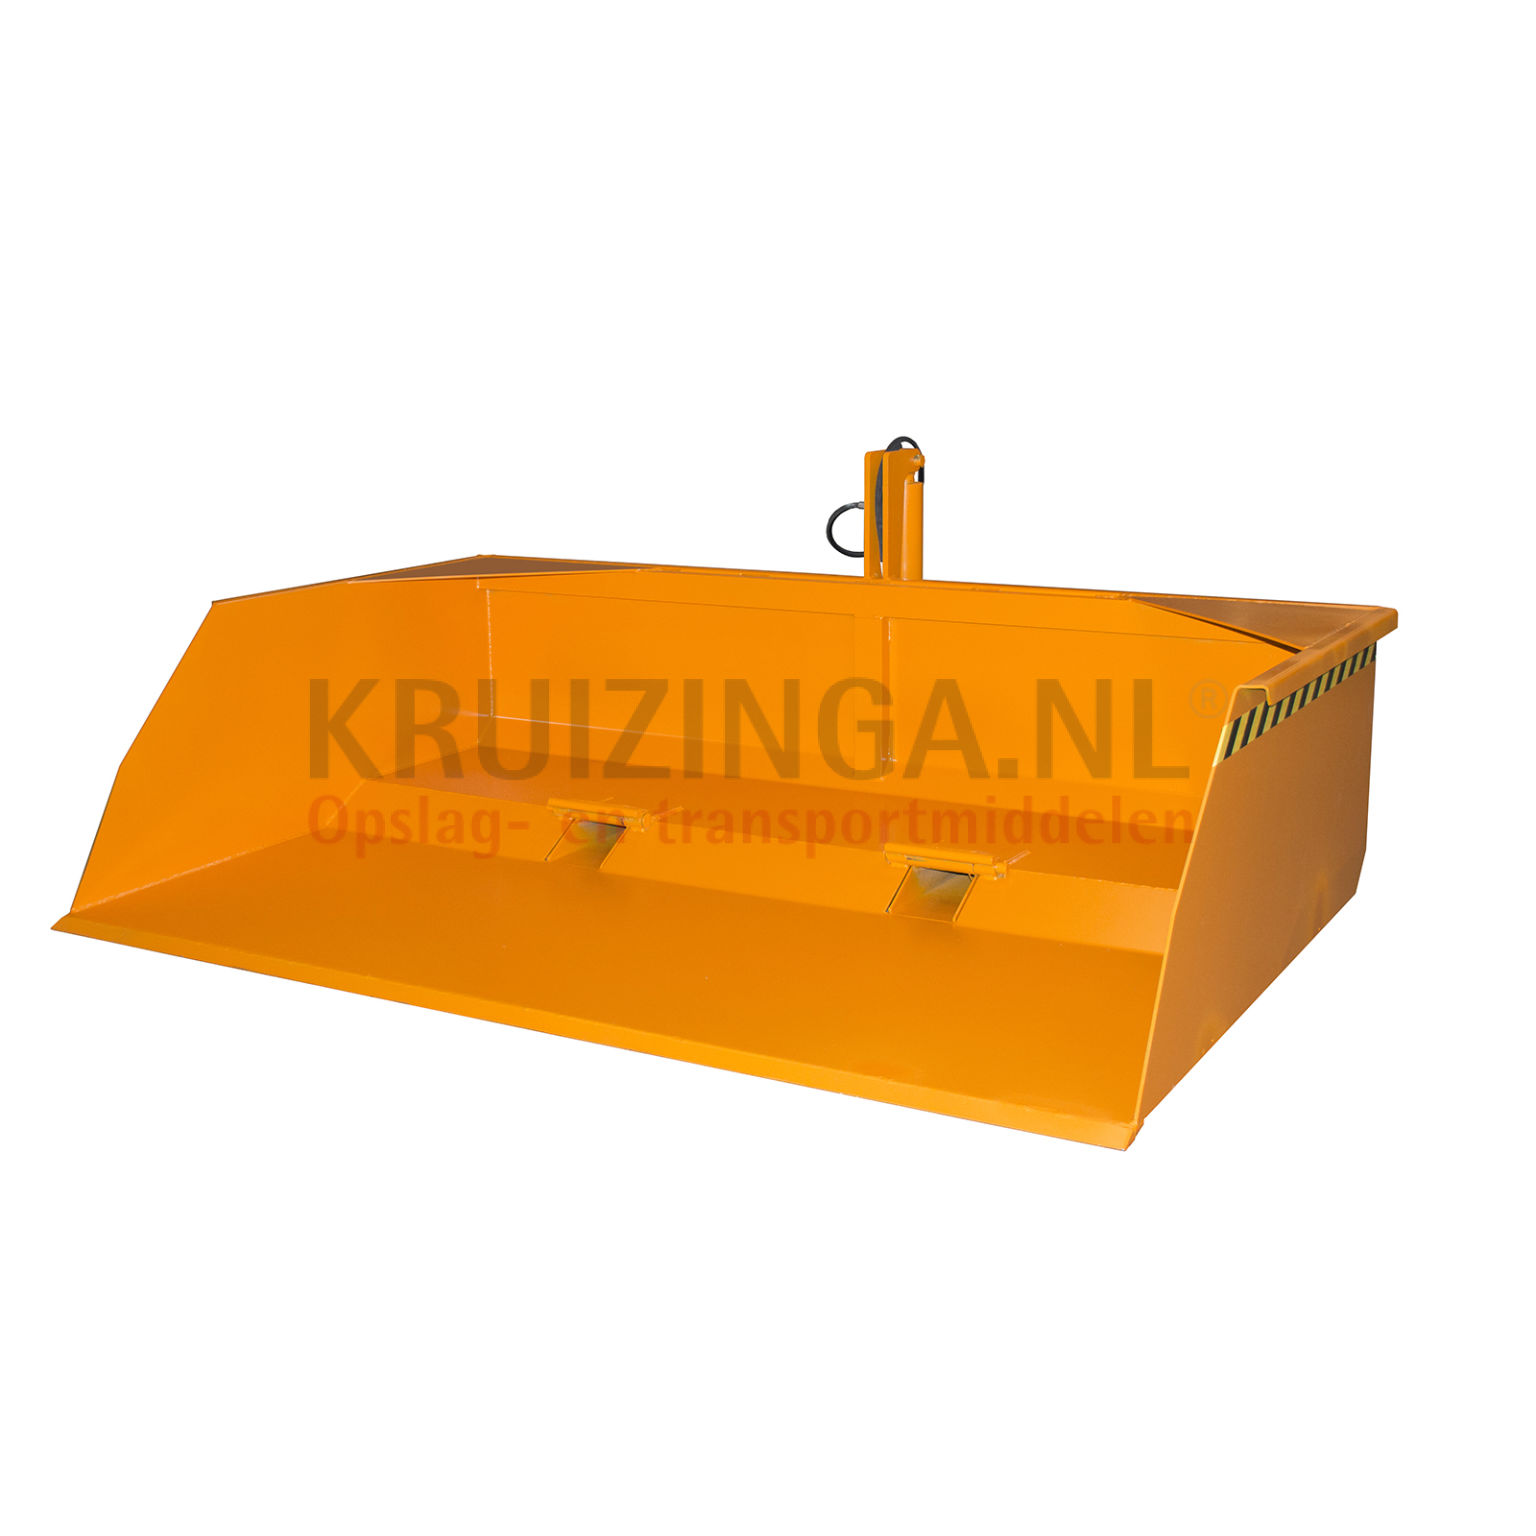 masa critica madrid New Tilting container Shovels Hydraulic shovel With tray opening 40SO-H010-BO